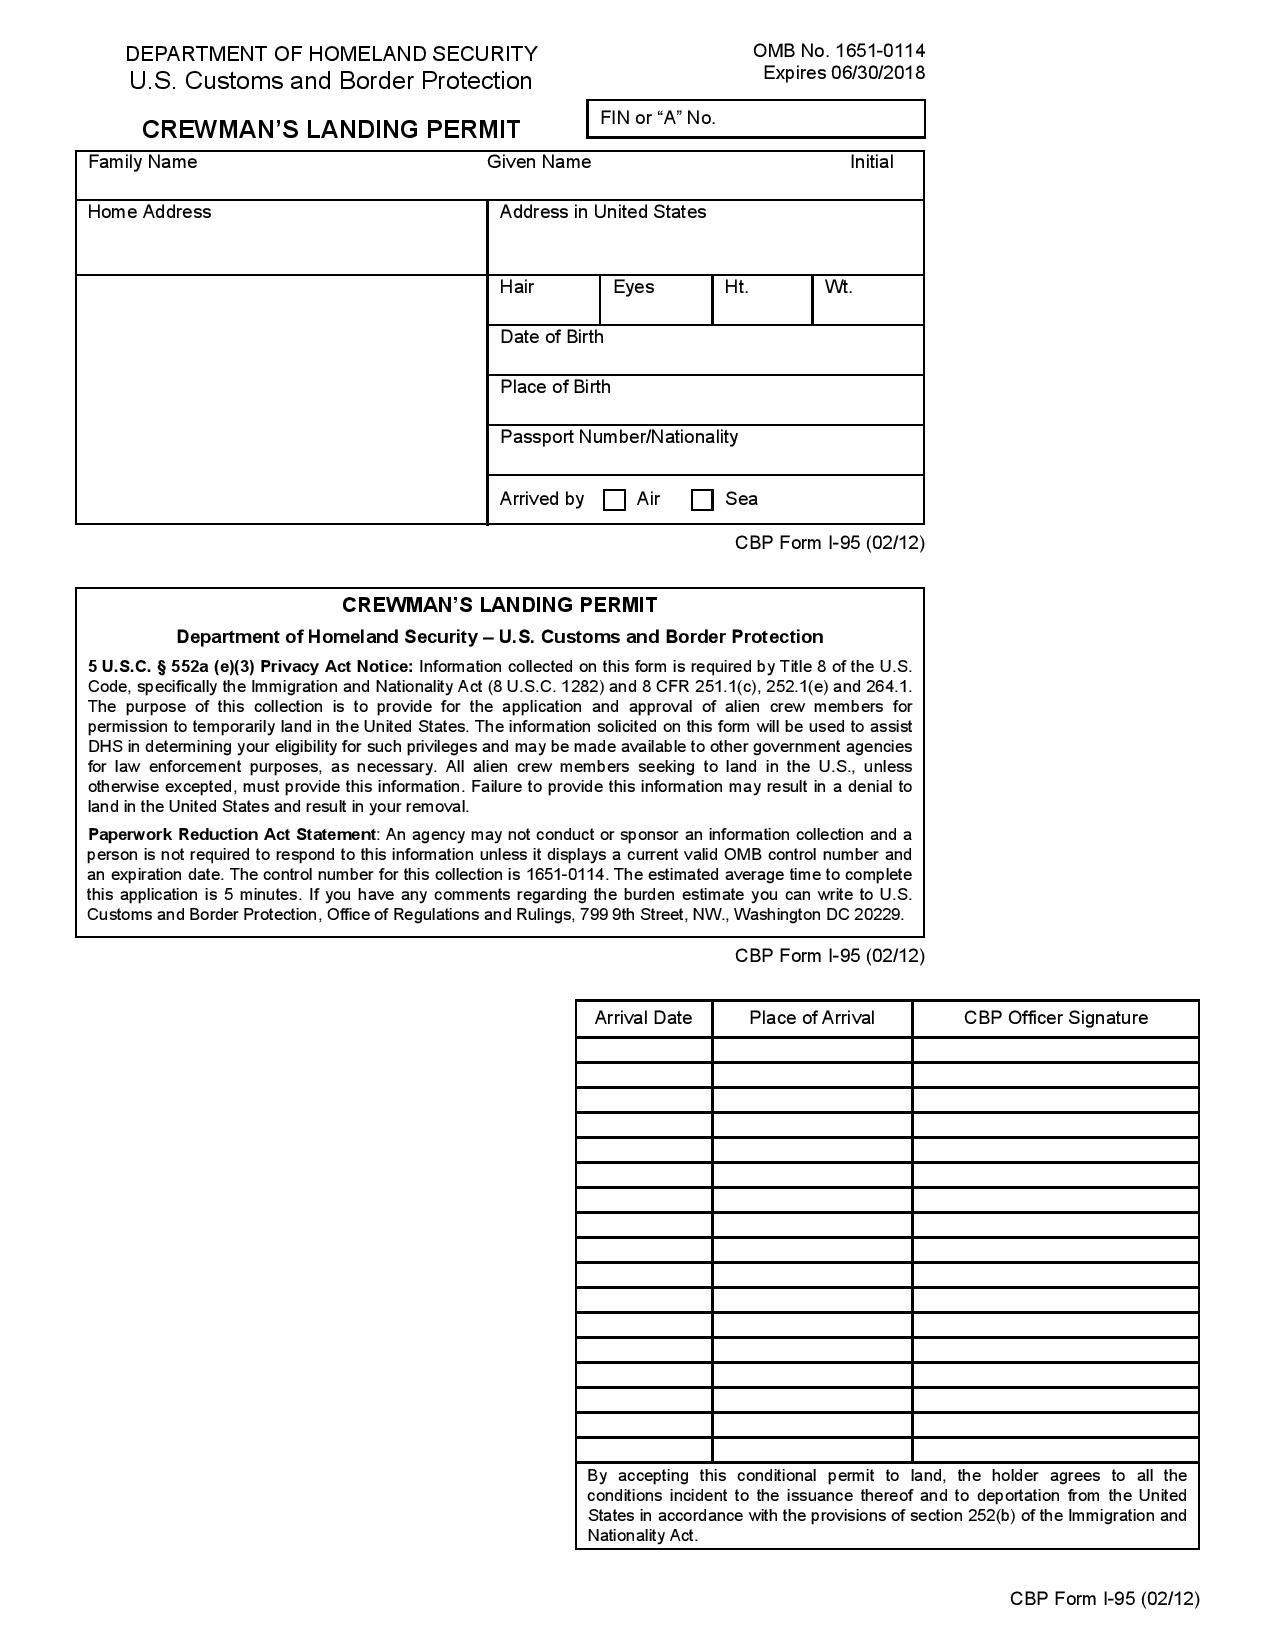 CBP Form 7533 - Fillable Sample to Print and Download in PDF